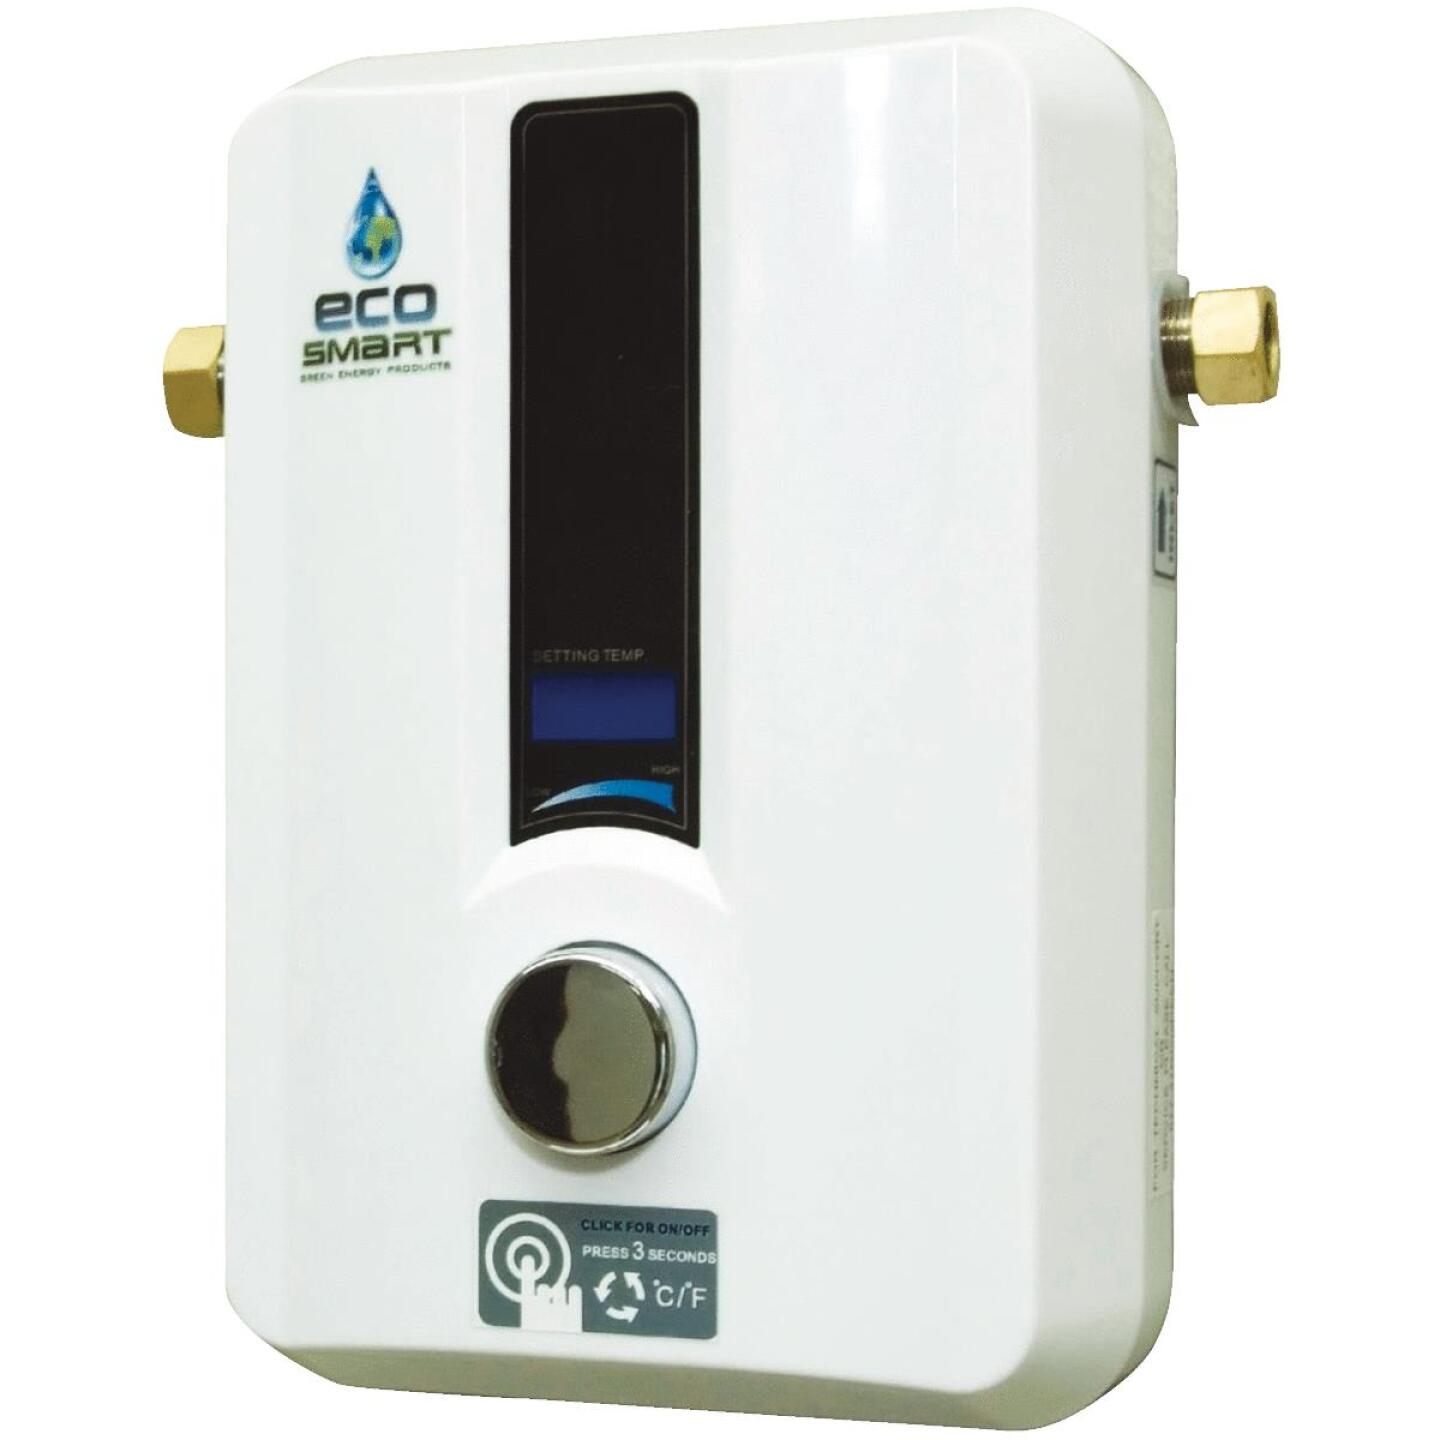 EcoSMART 240V 13.6kW Electric Tankless Water Heater Image 1